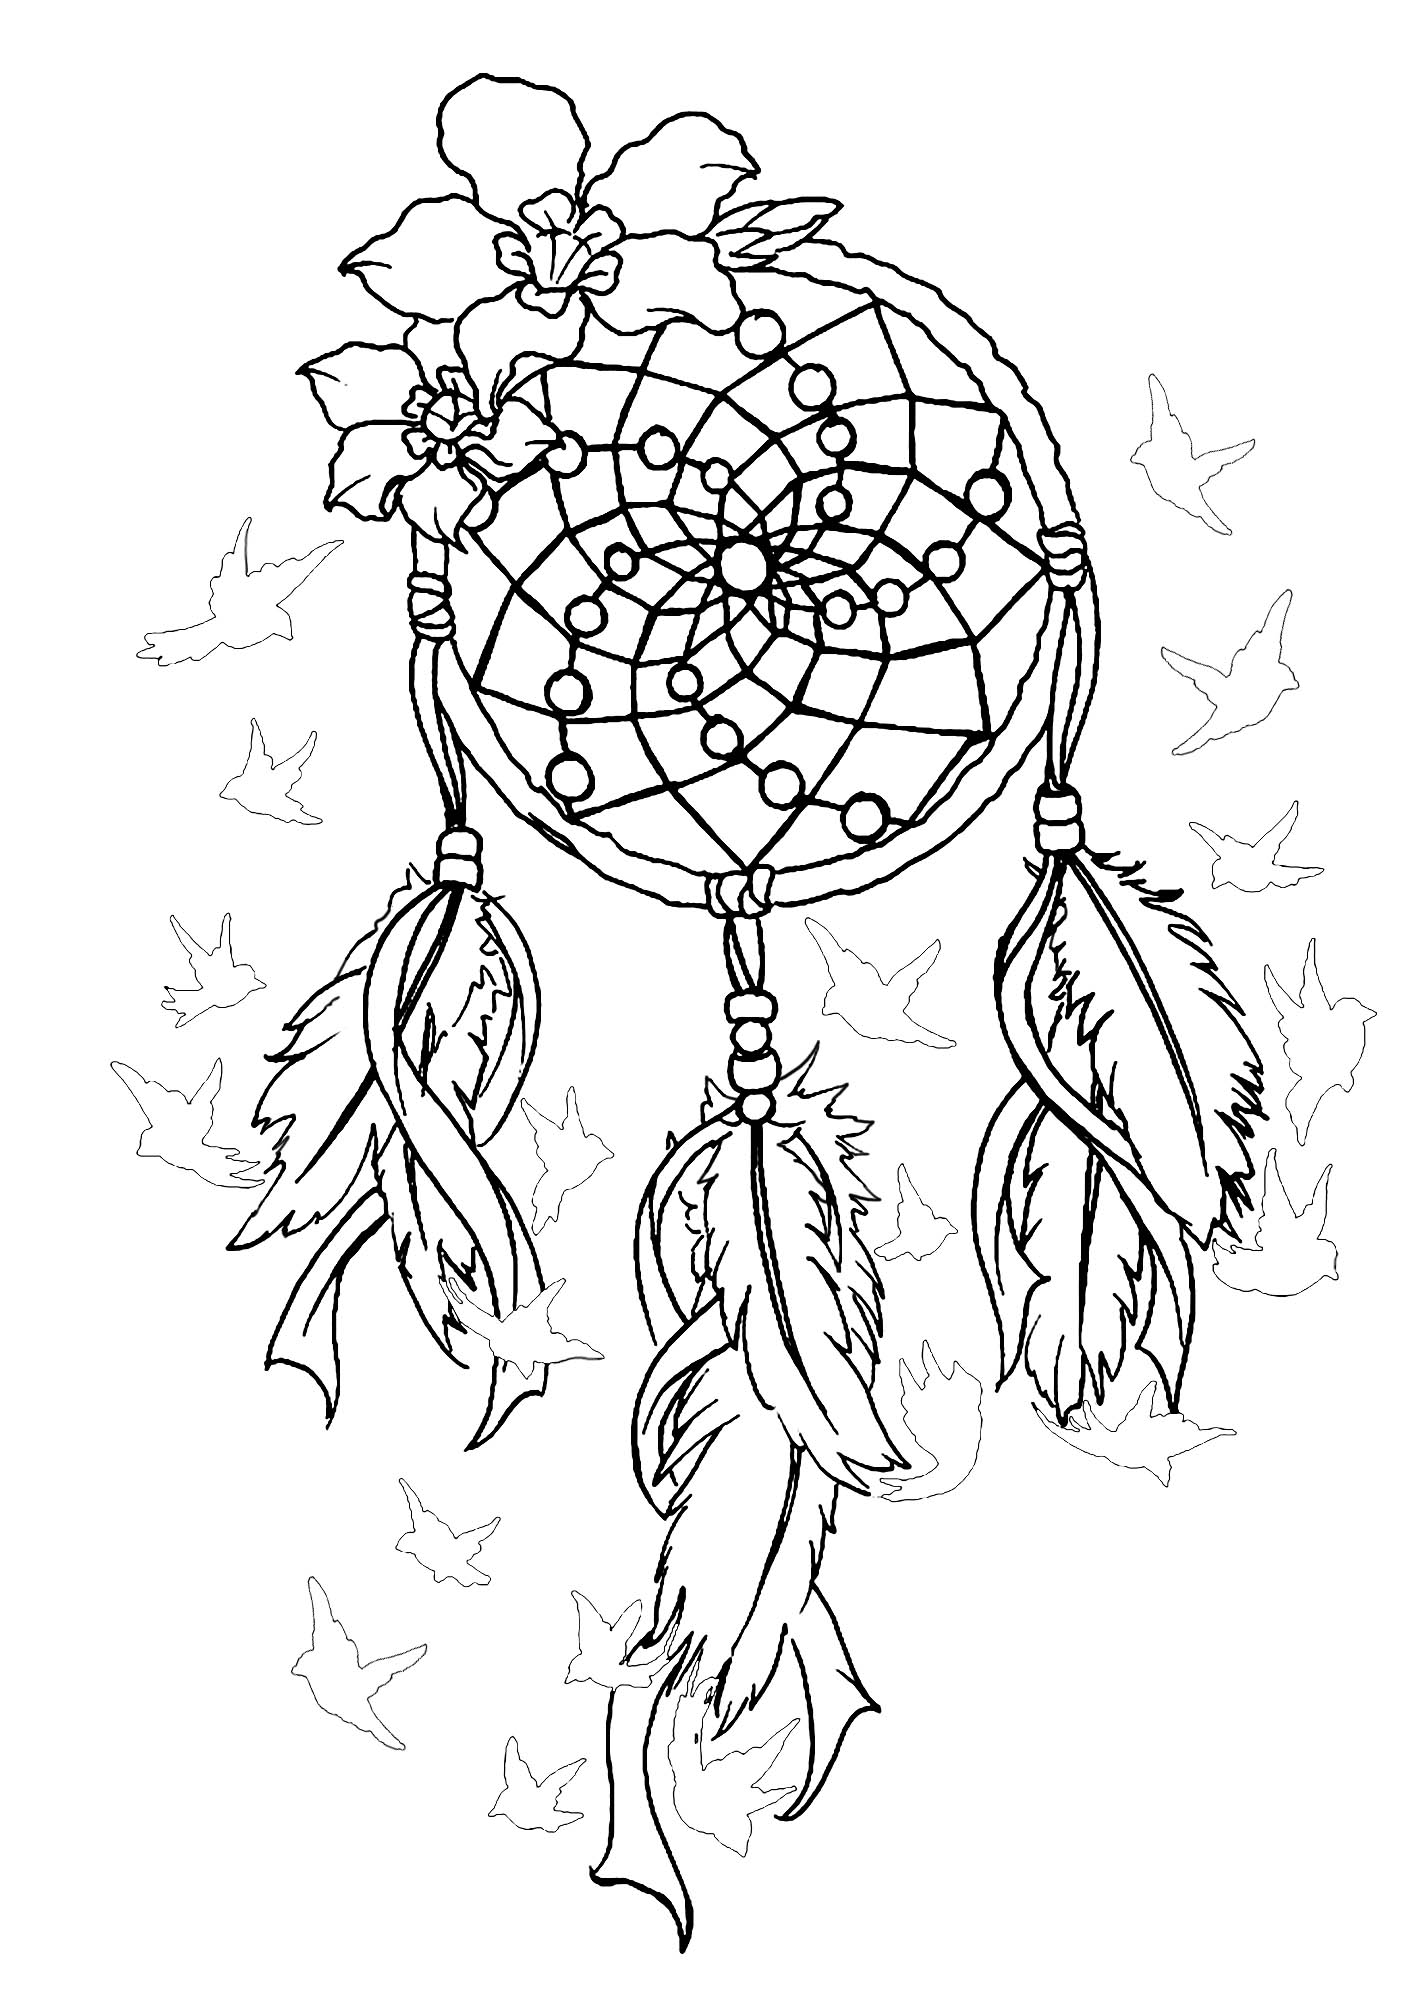 coloring pages for adults dream catchers dreamcatcher doodle art sabadoodle adults for catchers pages coloring dream